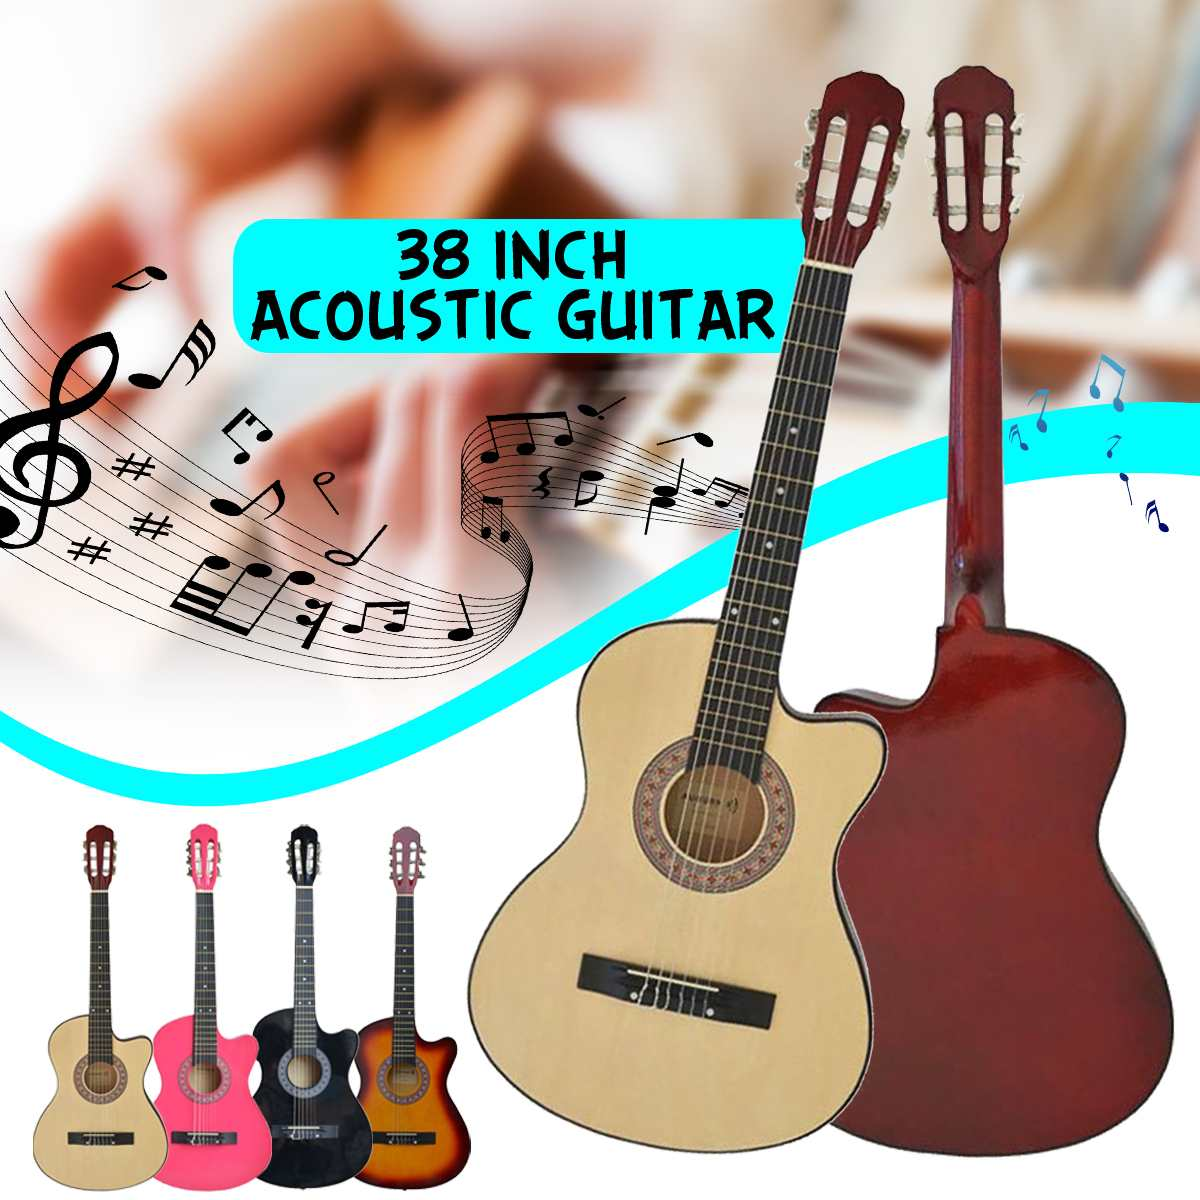 38 Inch Acoustic Guitar Beginners Getting Started Practicing Stringed Instruments title=